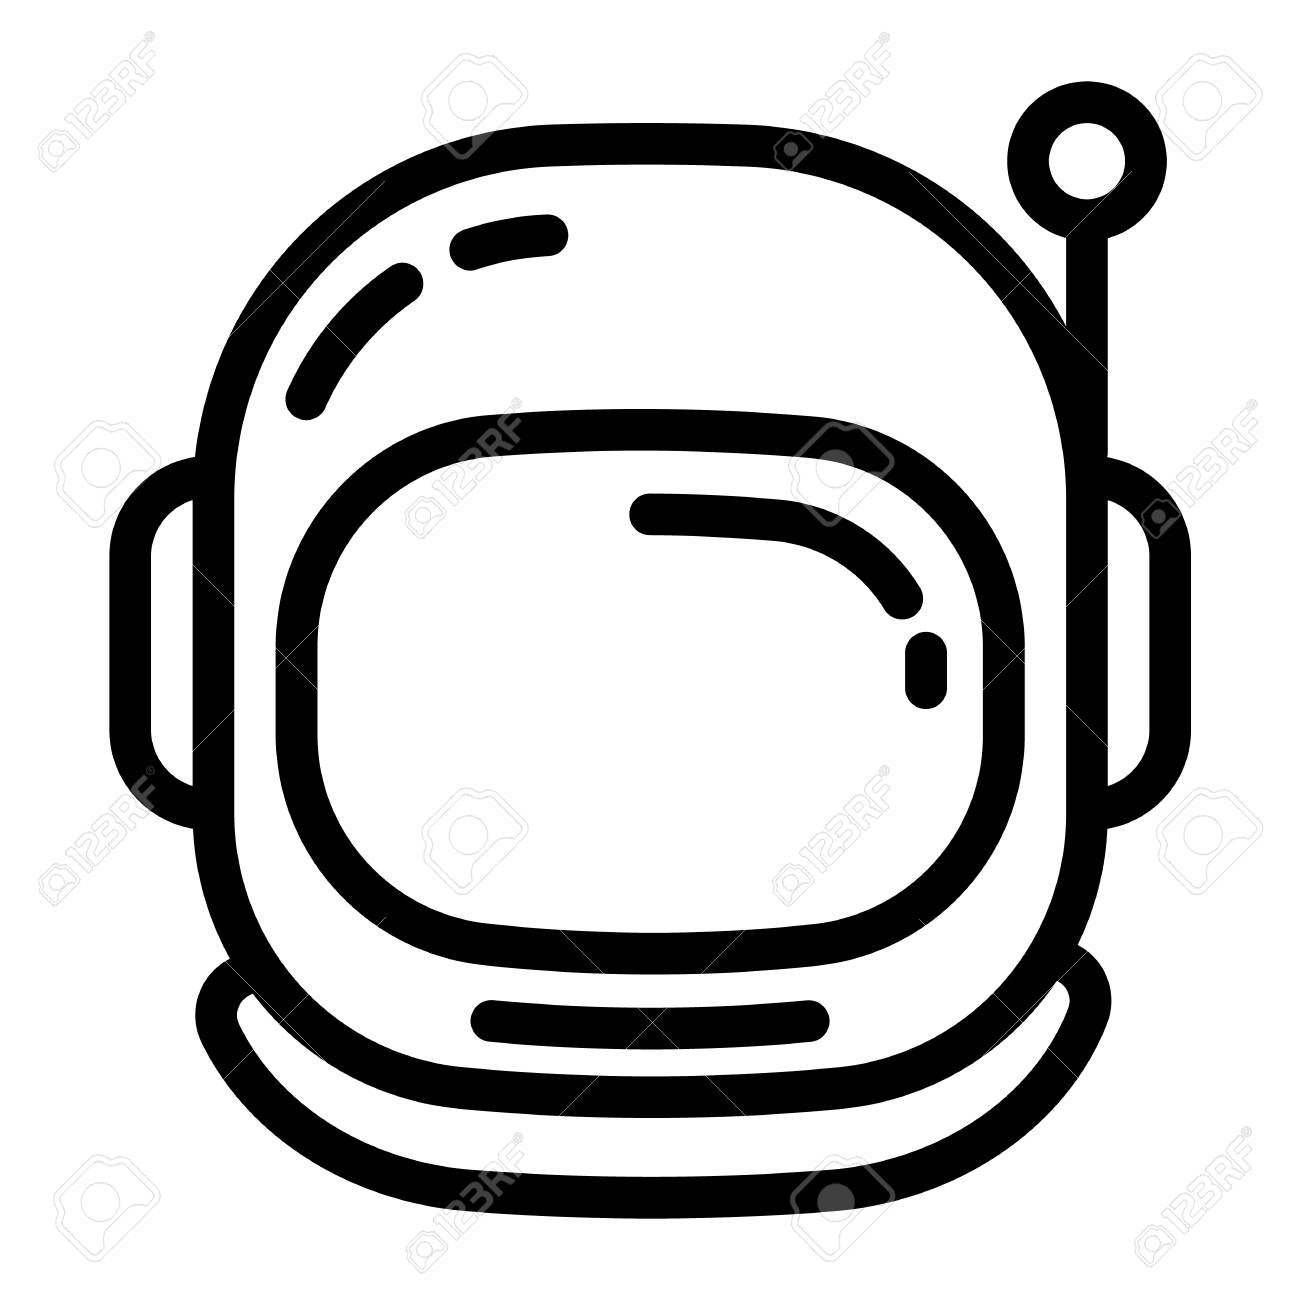 Astronaut helmet icon. Outline astronaut helmet vector icon for...